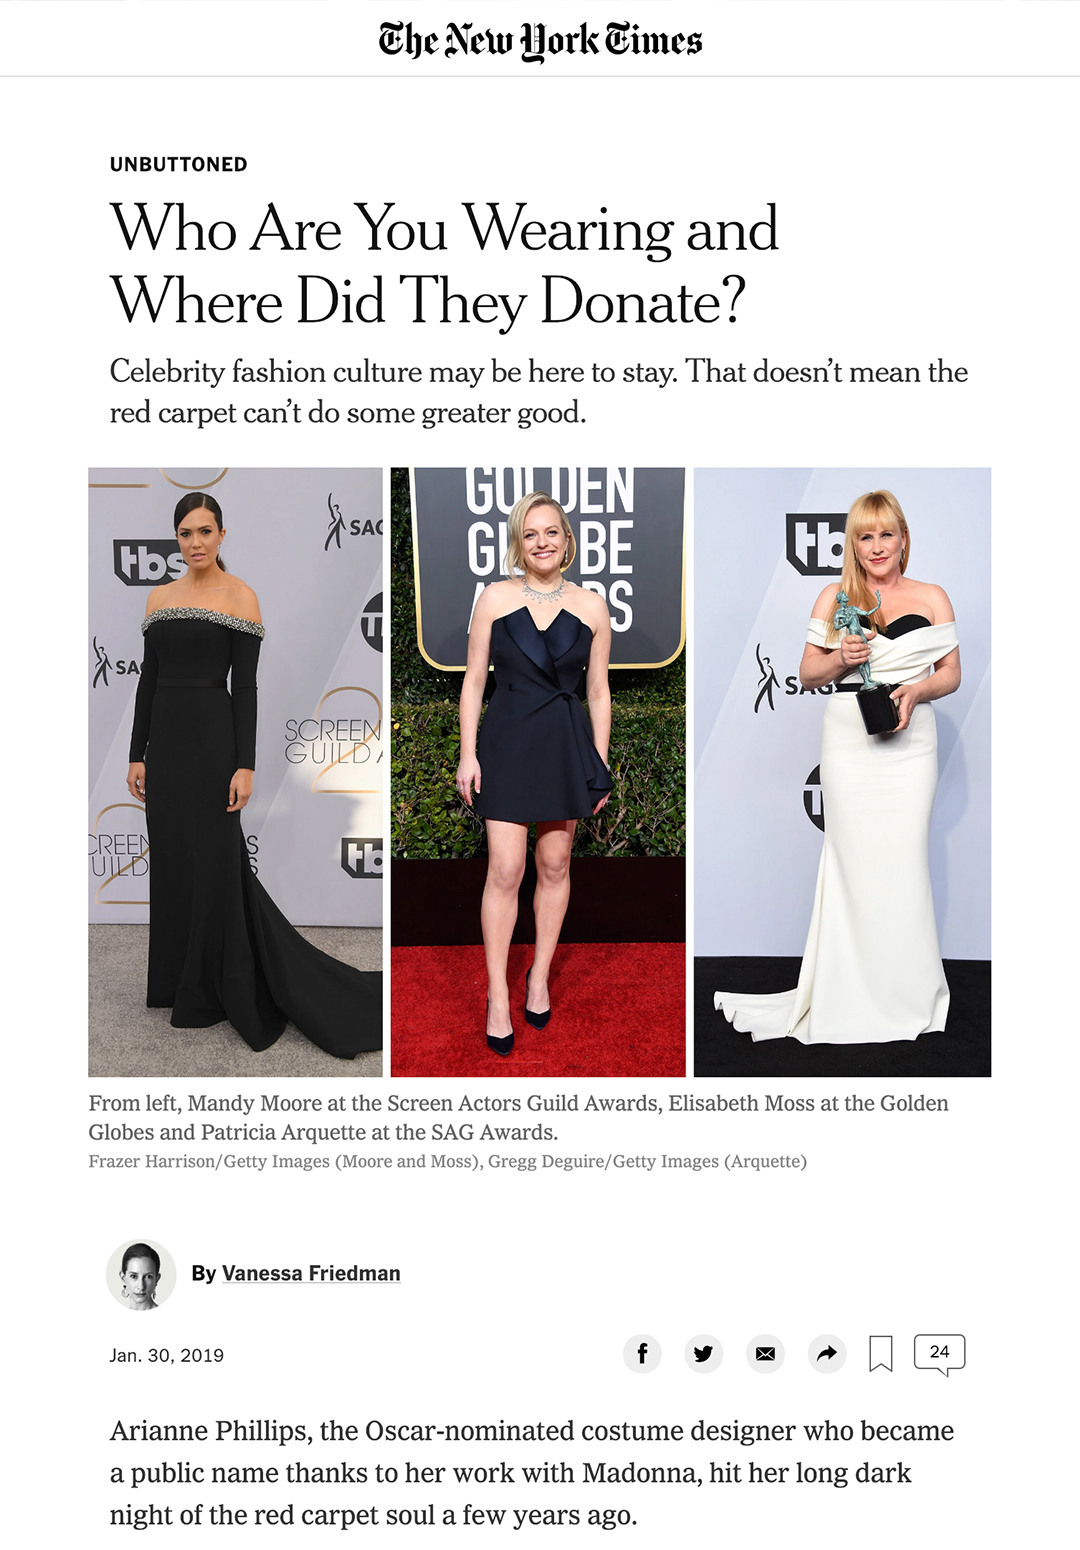 the new york times - WHO ARE YOU WEARING AND WHERE DID THEY DONATE?